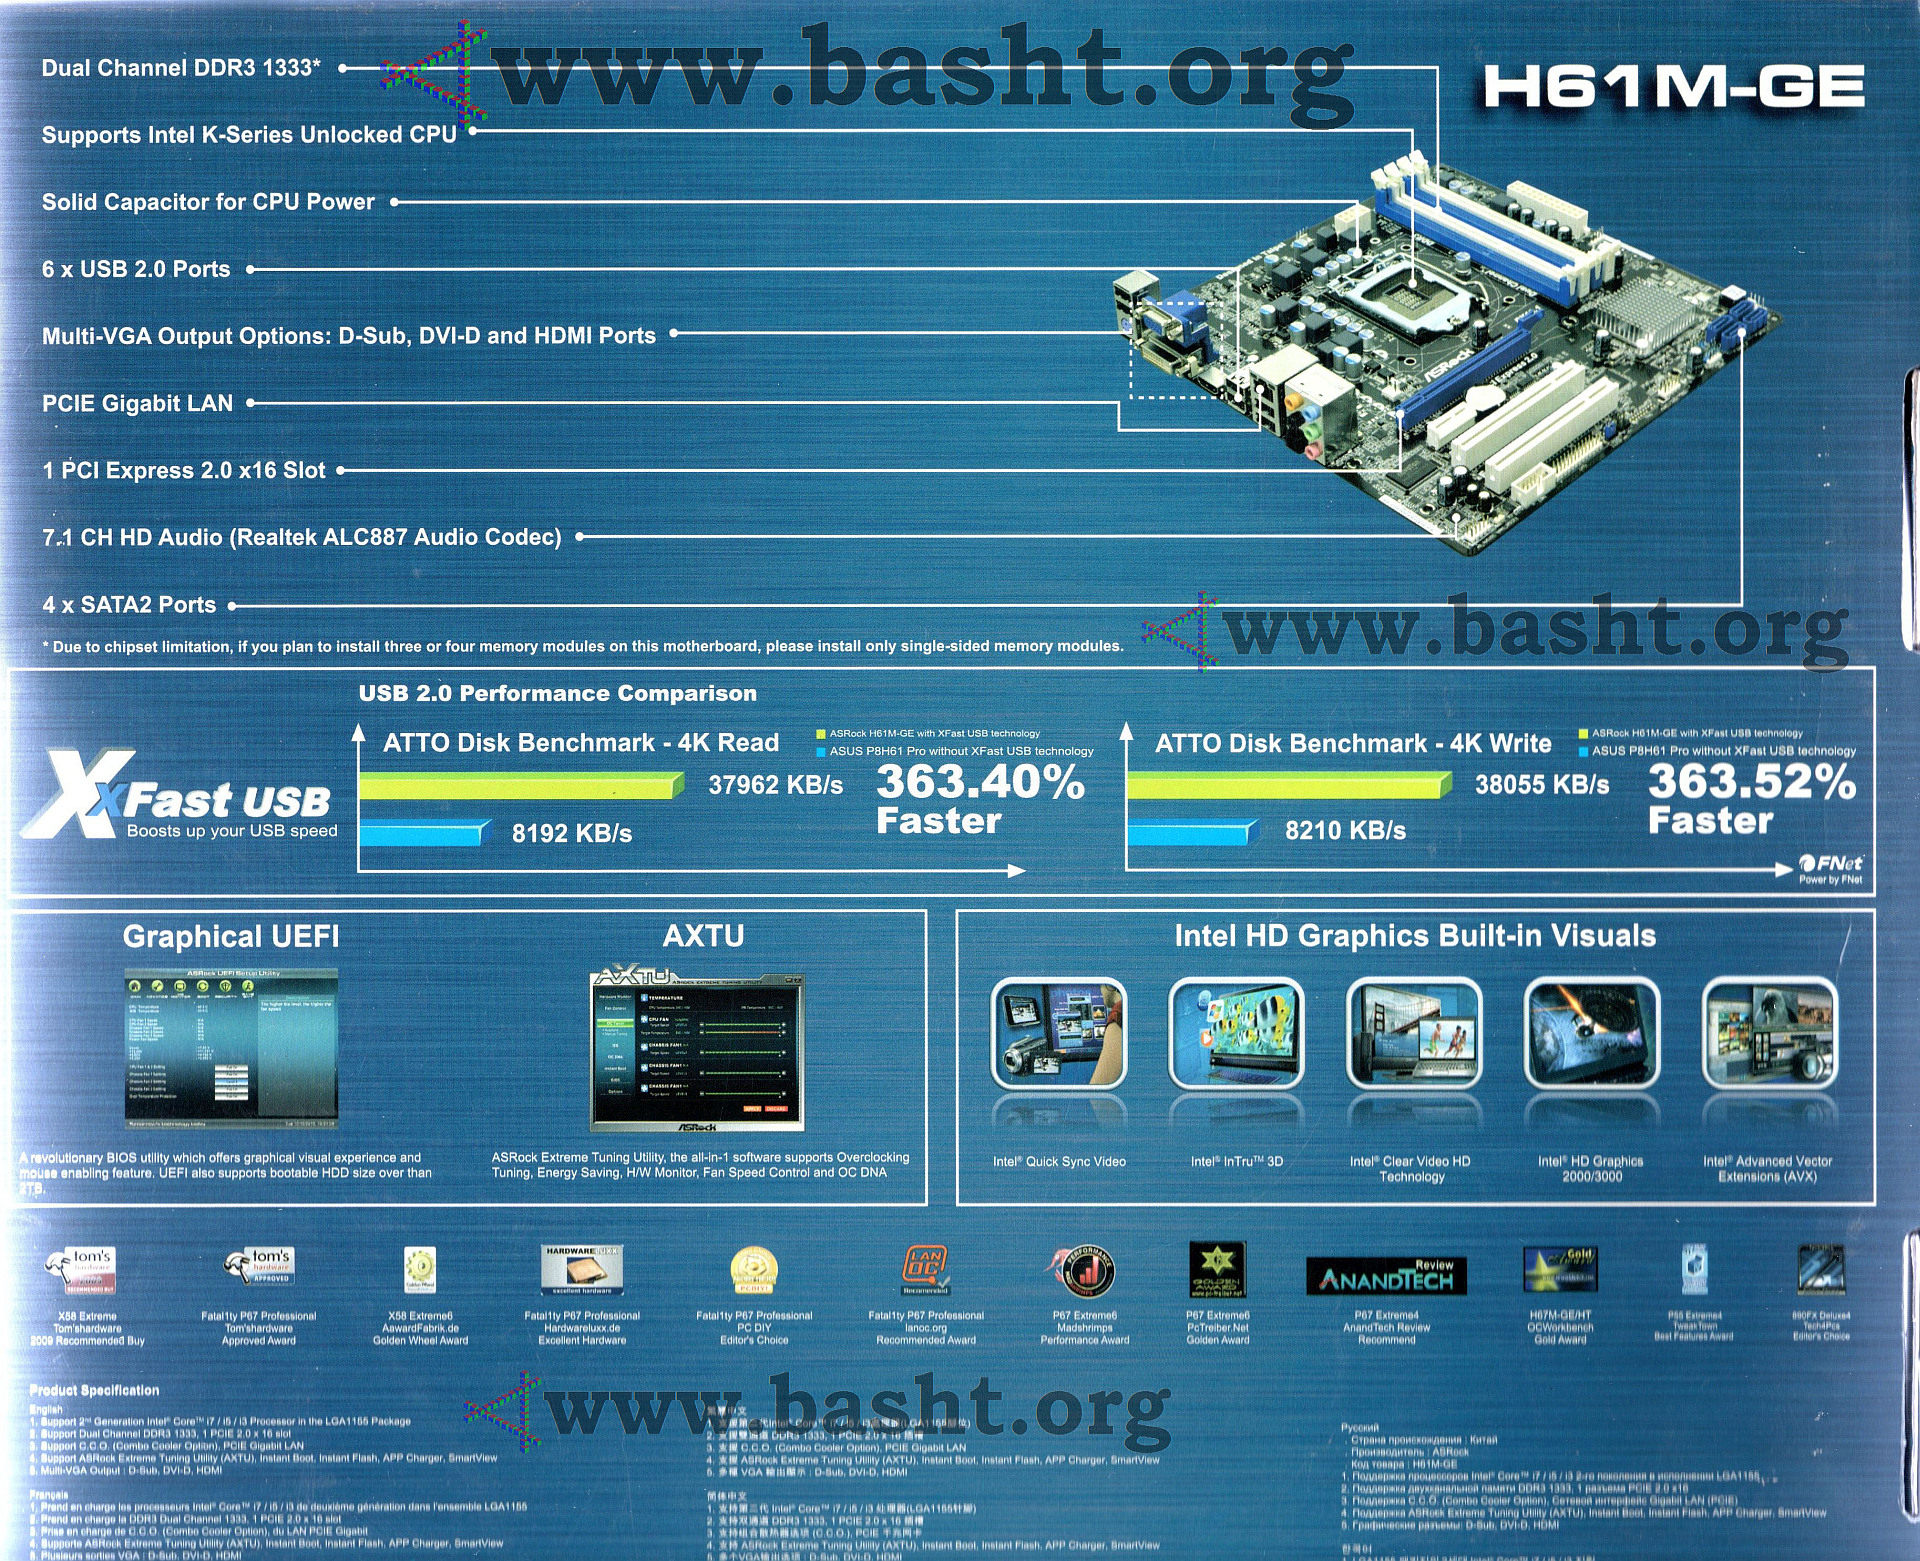 Asrock H61M-GE Extreme Tuning Drivers for Windows XP